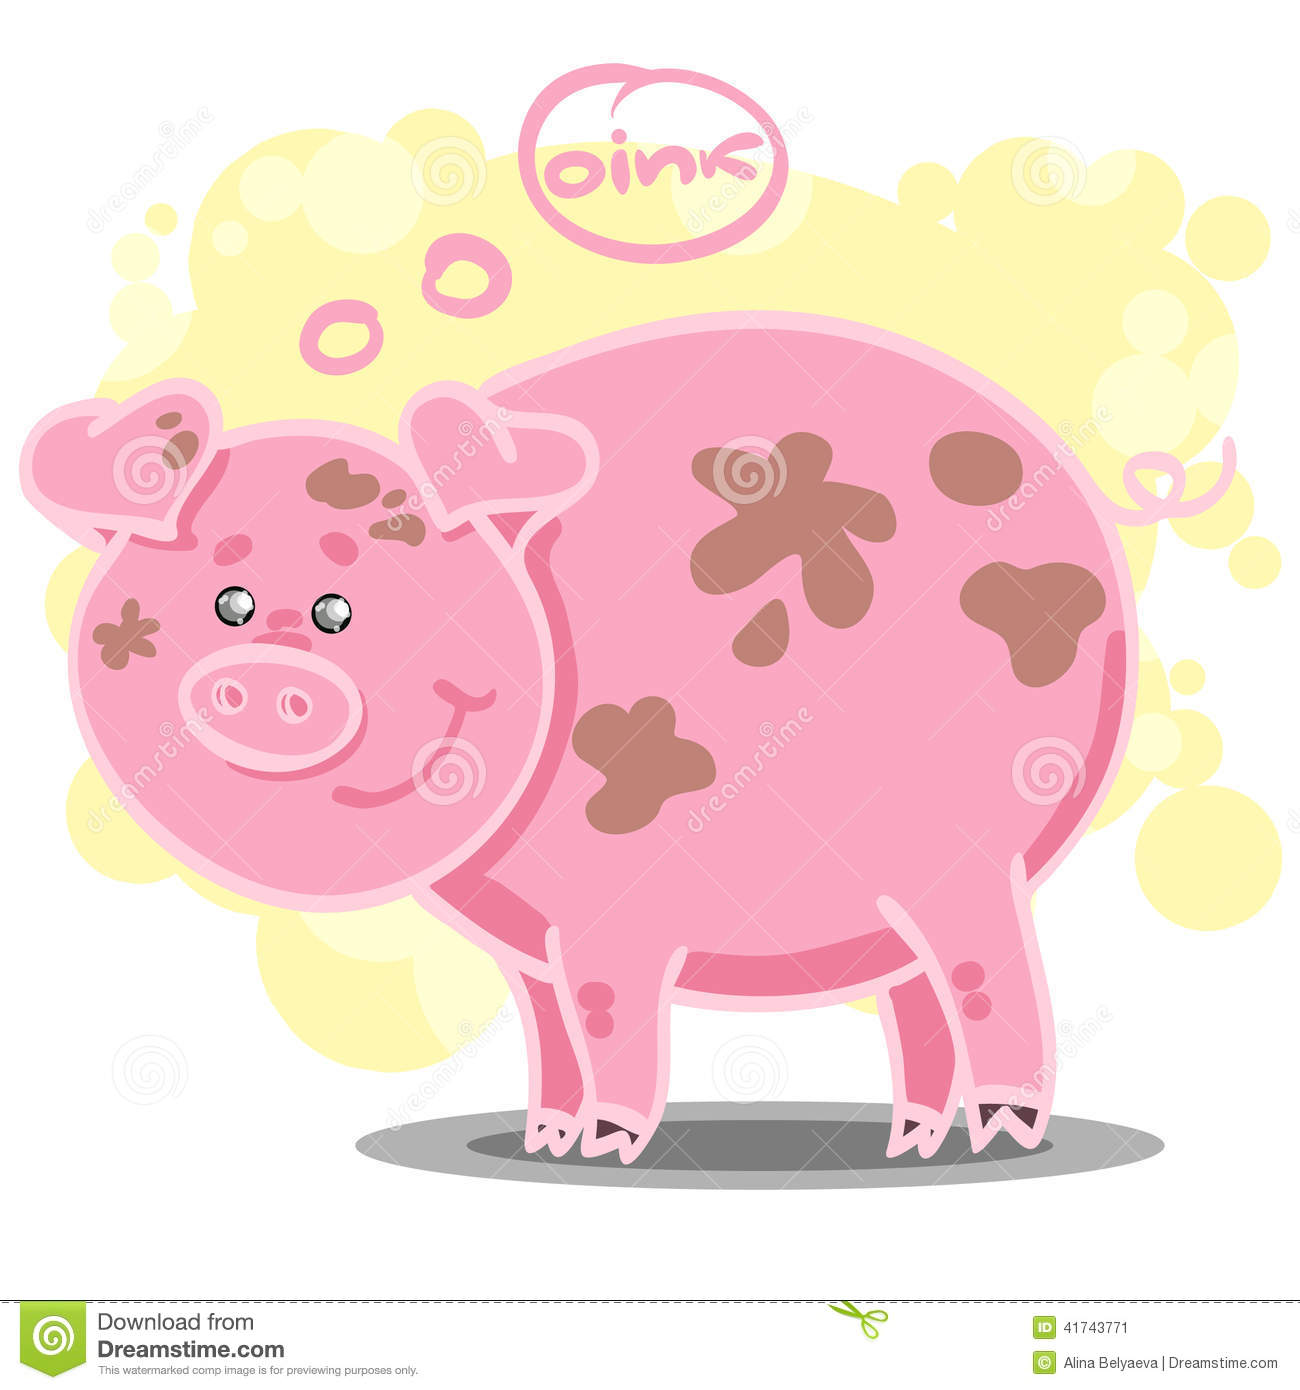 Cute cartoon pig with big eyes